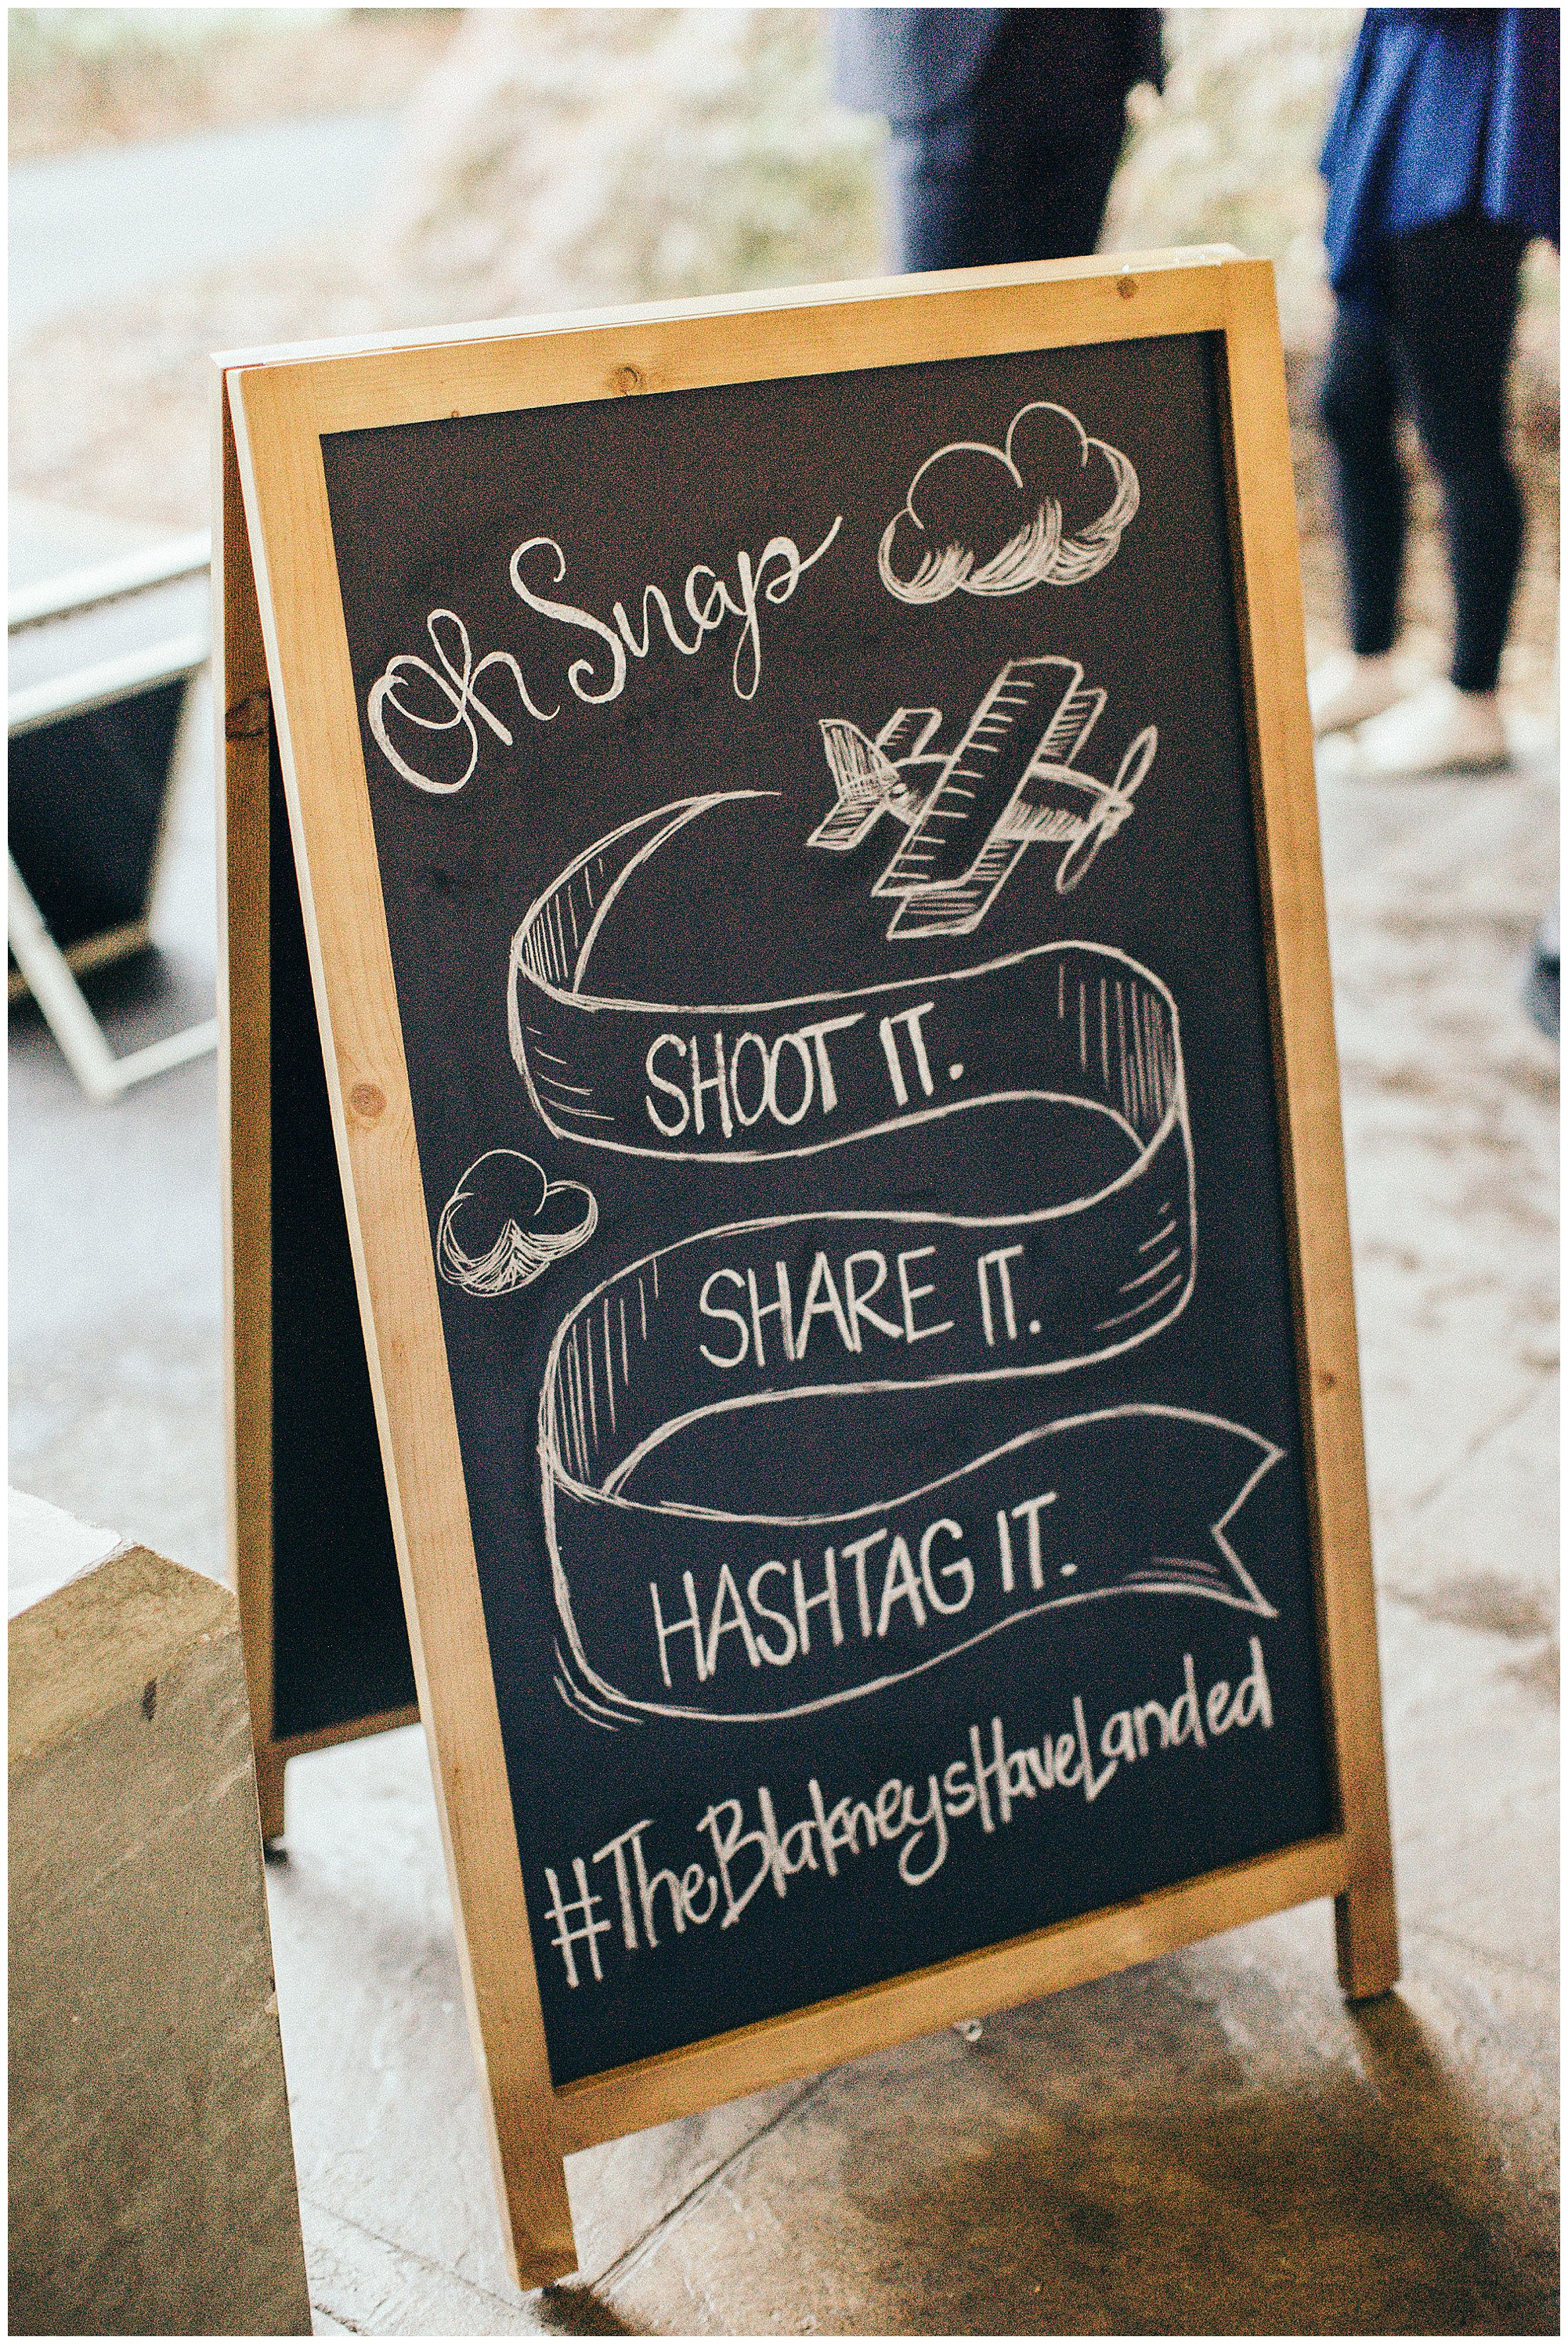 wedding hashtag on custom sandwich board sign idea at wedding. Photography by Jennifer Madino Photography